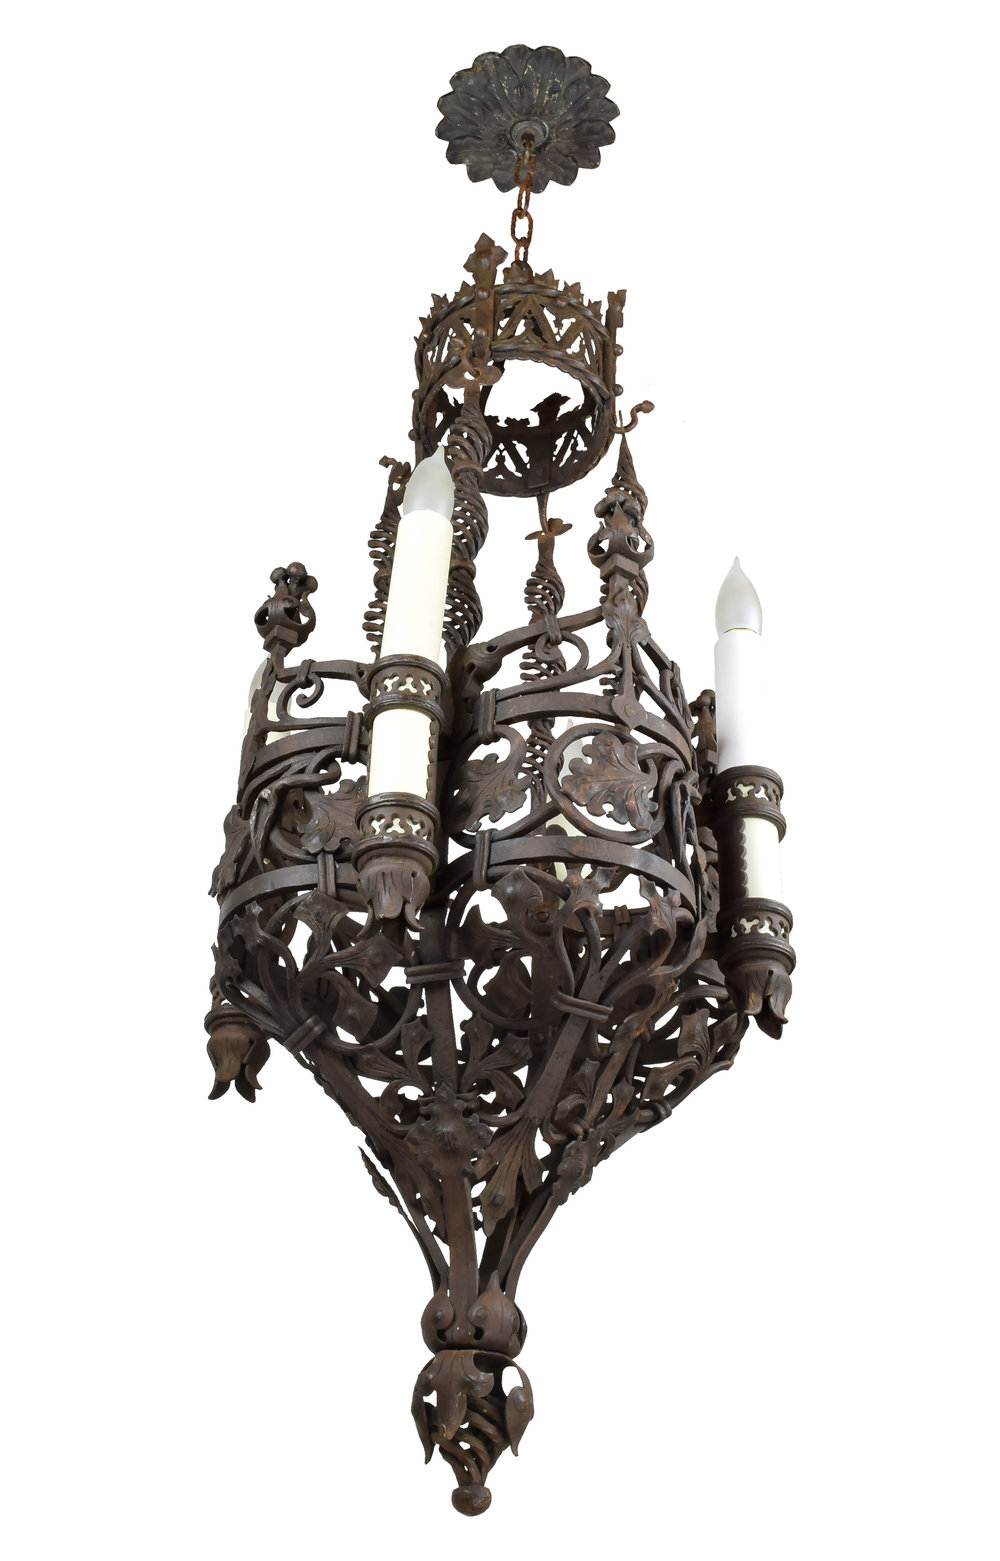 47170-tudor-4-arm-chandelier-lower-angle.jpg